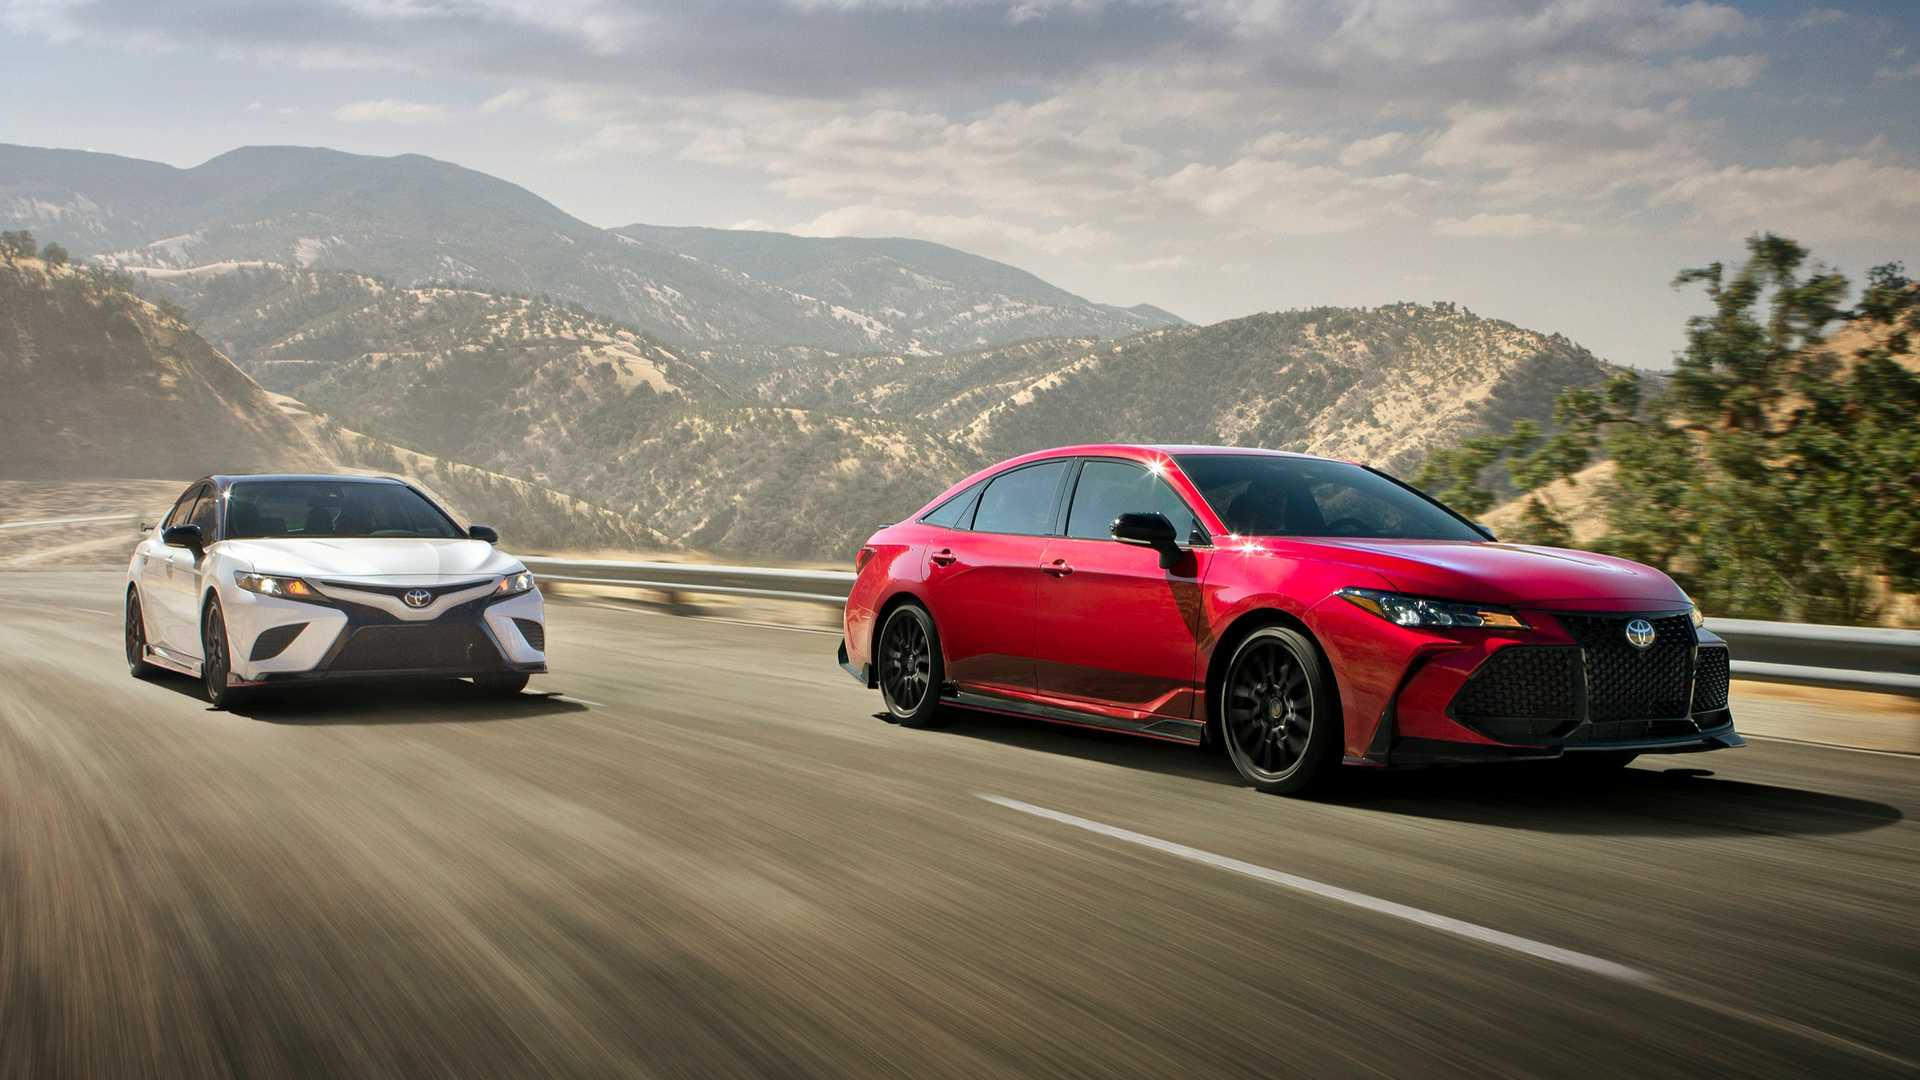 71 All New Toyota Camry 2020 Price for Toyota Camry 2020